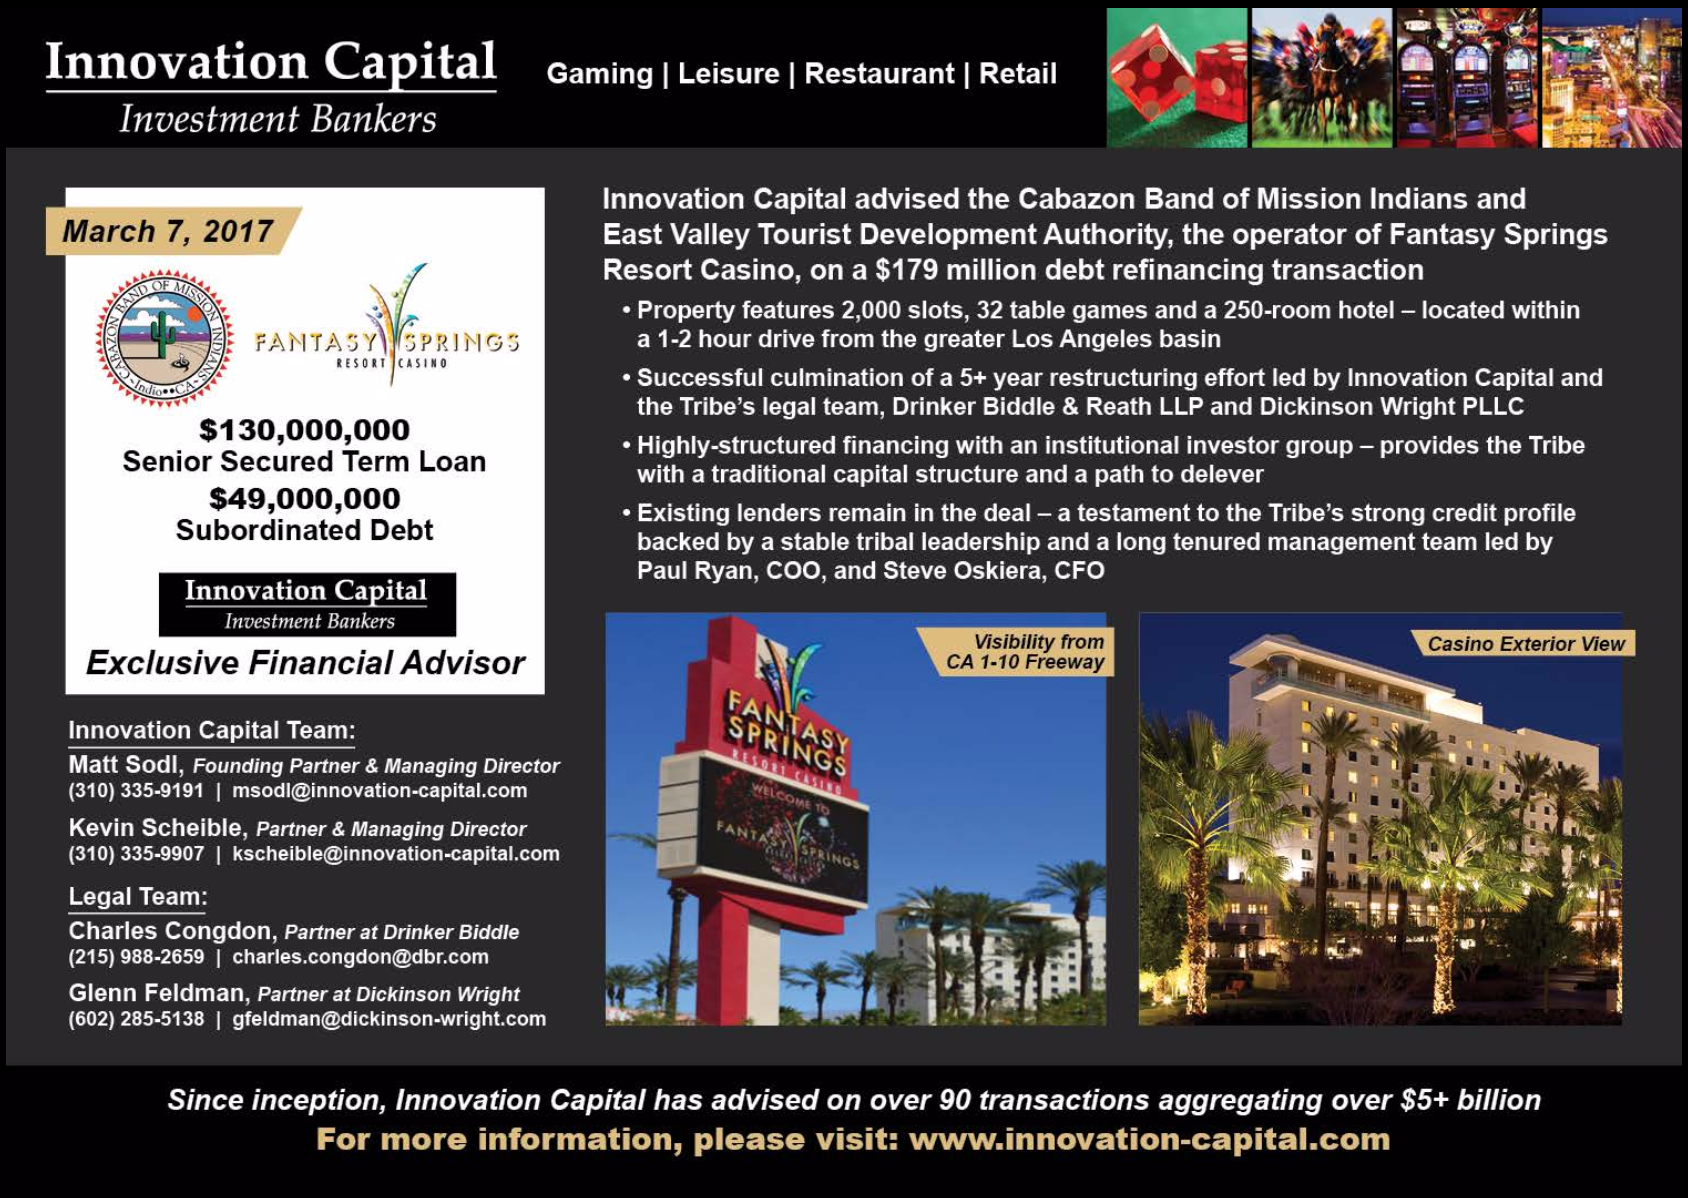 Innovation Capital advised the Cabazon Band of Mission Indians and East Valley Tourist Development Authority, the operator of Fantasy Springs Resort Casino, on a $179 million debt refinancing transaction.png